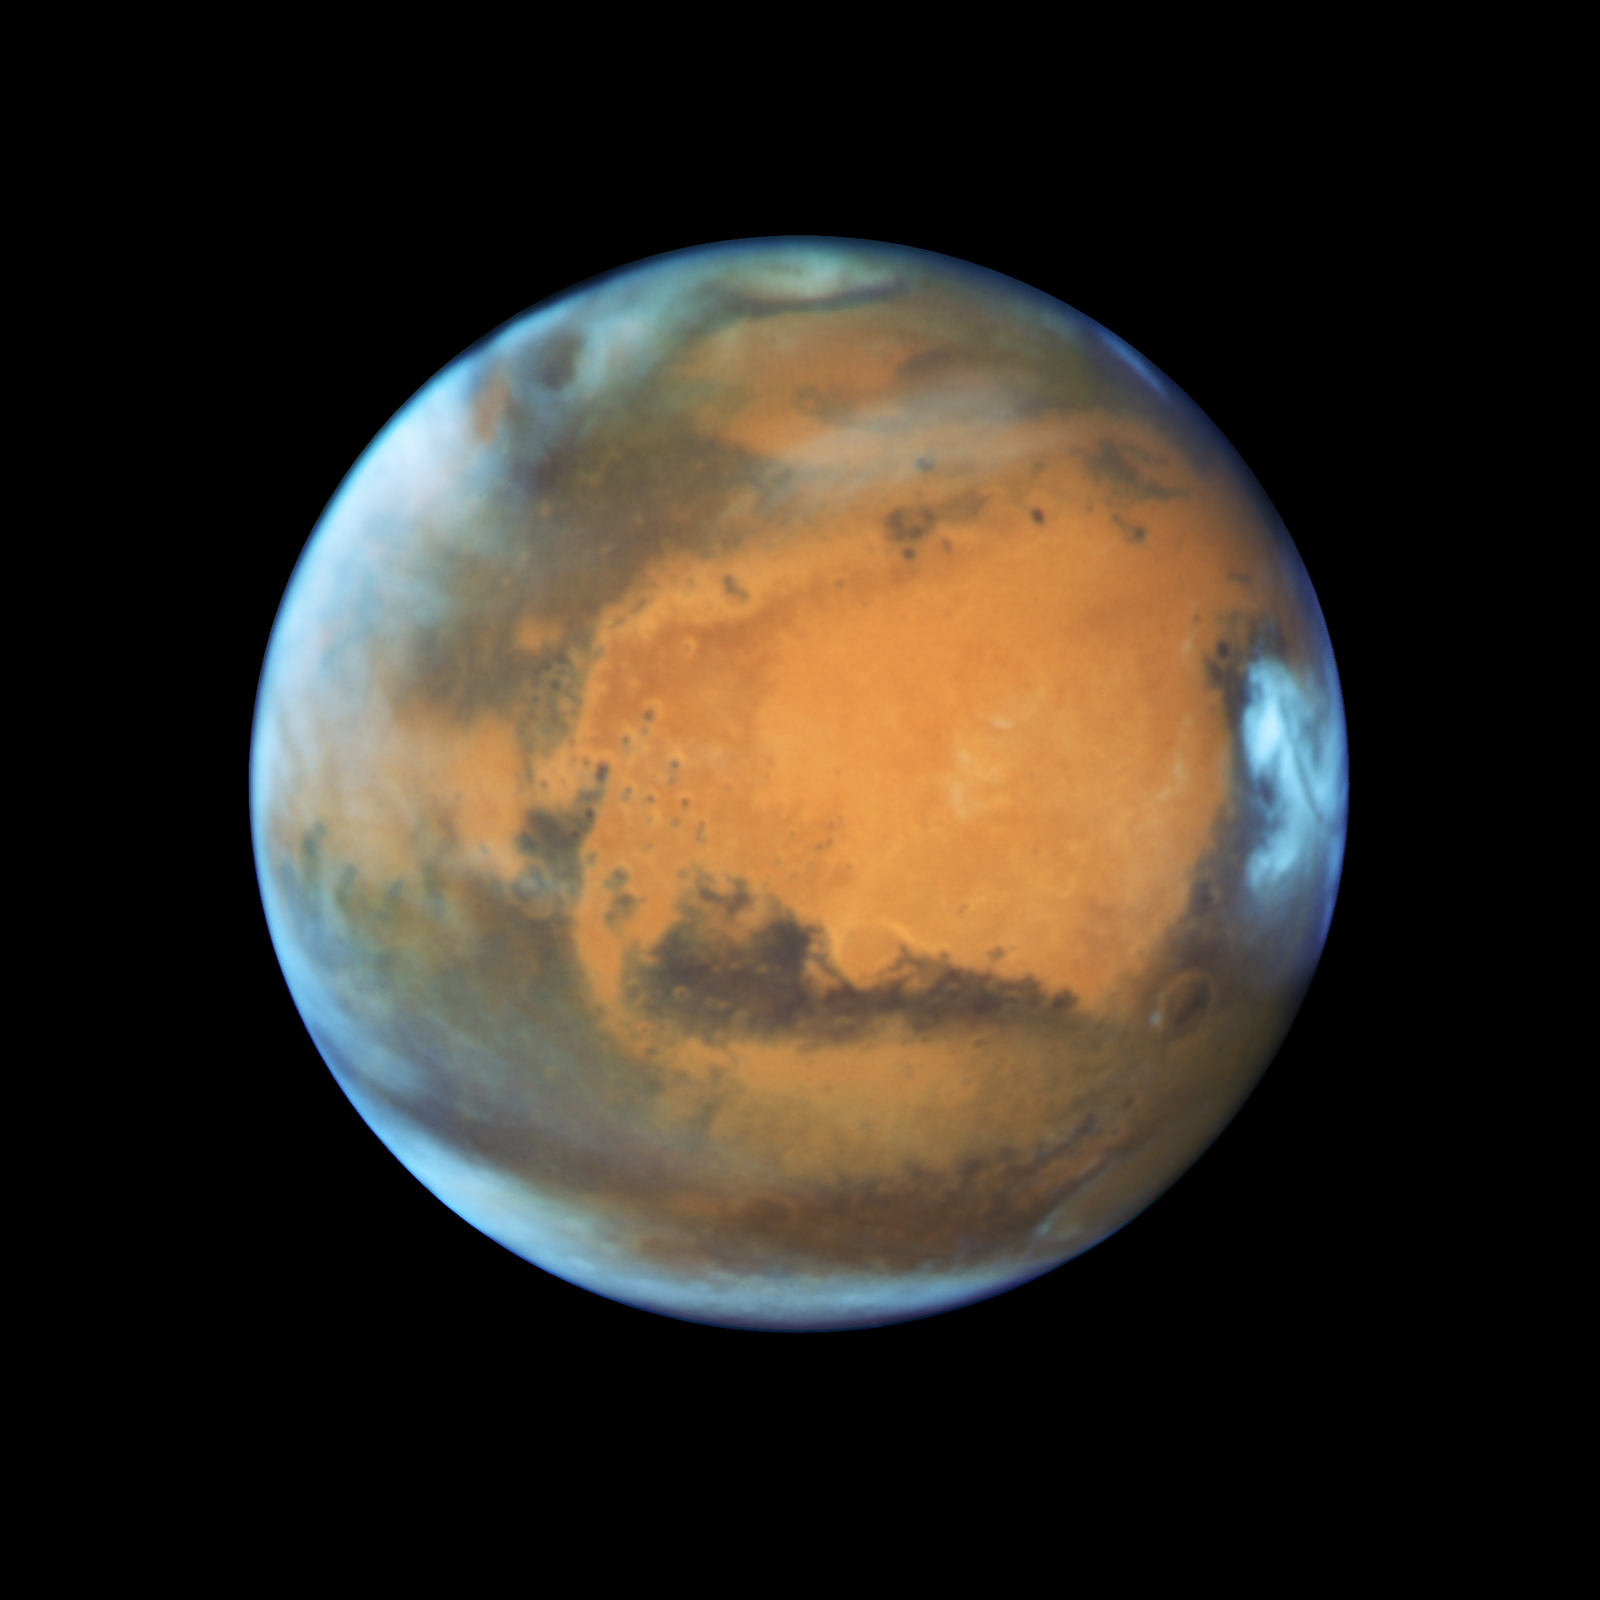 On May 30, Mars will be the closest it has been to Earth in 11 years, at a distance of 46.8 million miles. Mars is especially photogenic during opposition because it can be seen fully illuminated by the sun as viewed from Earth.